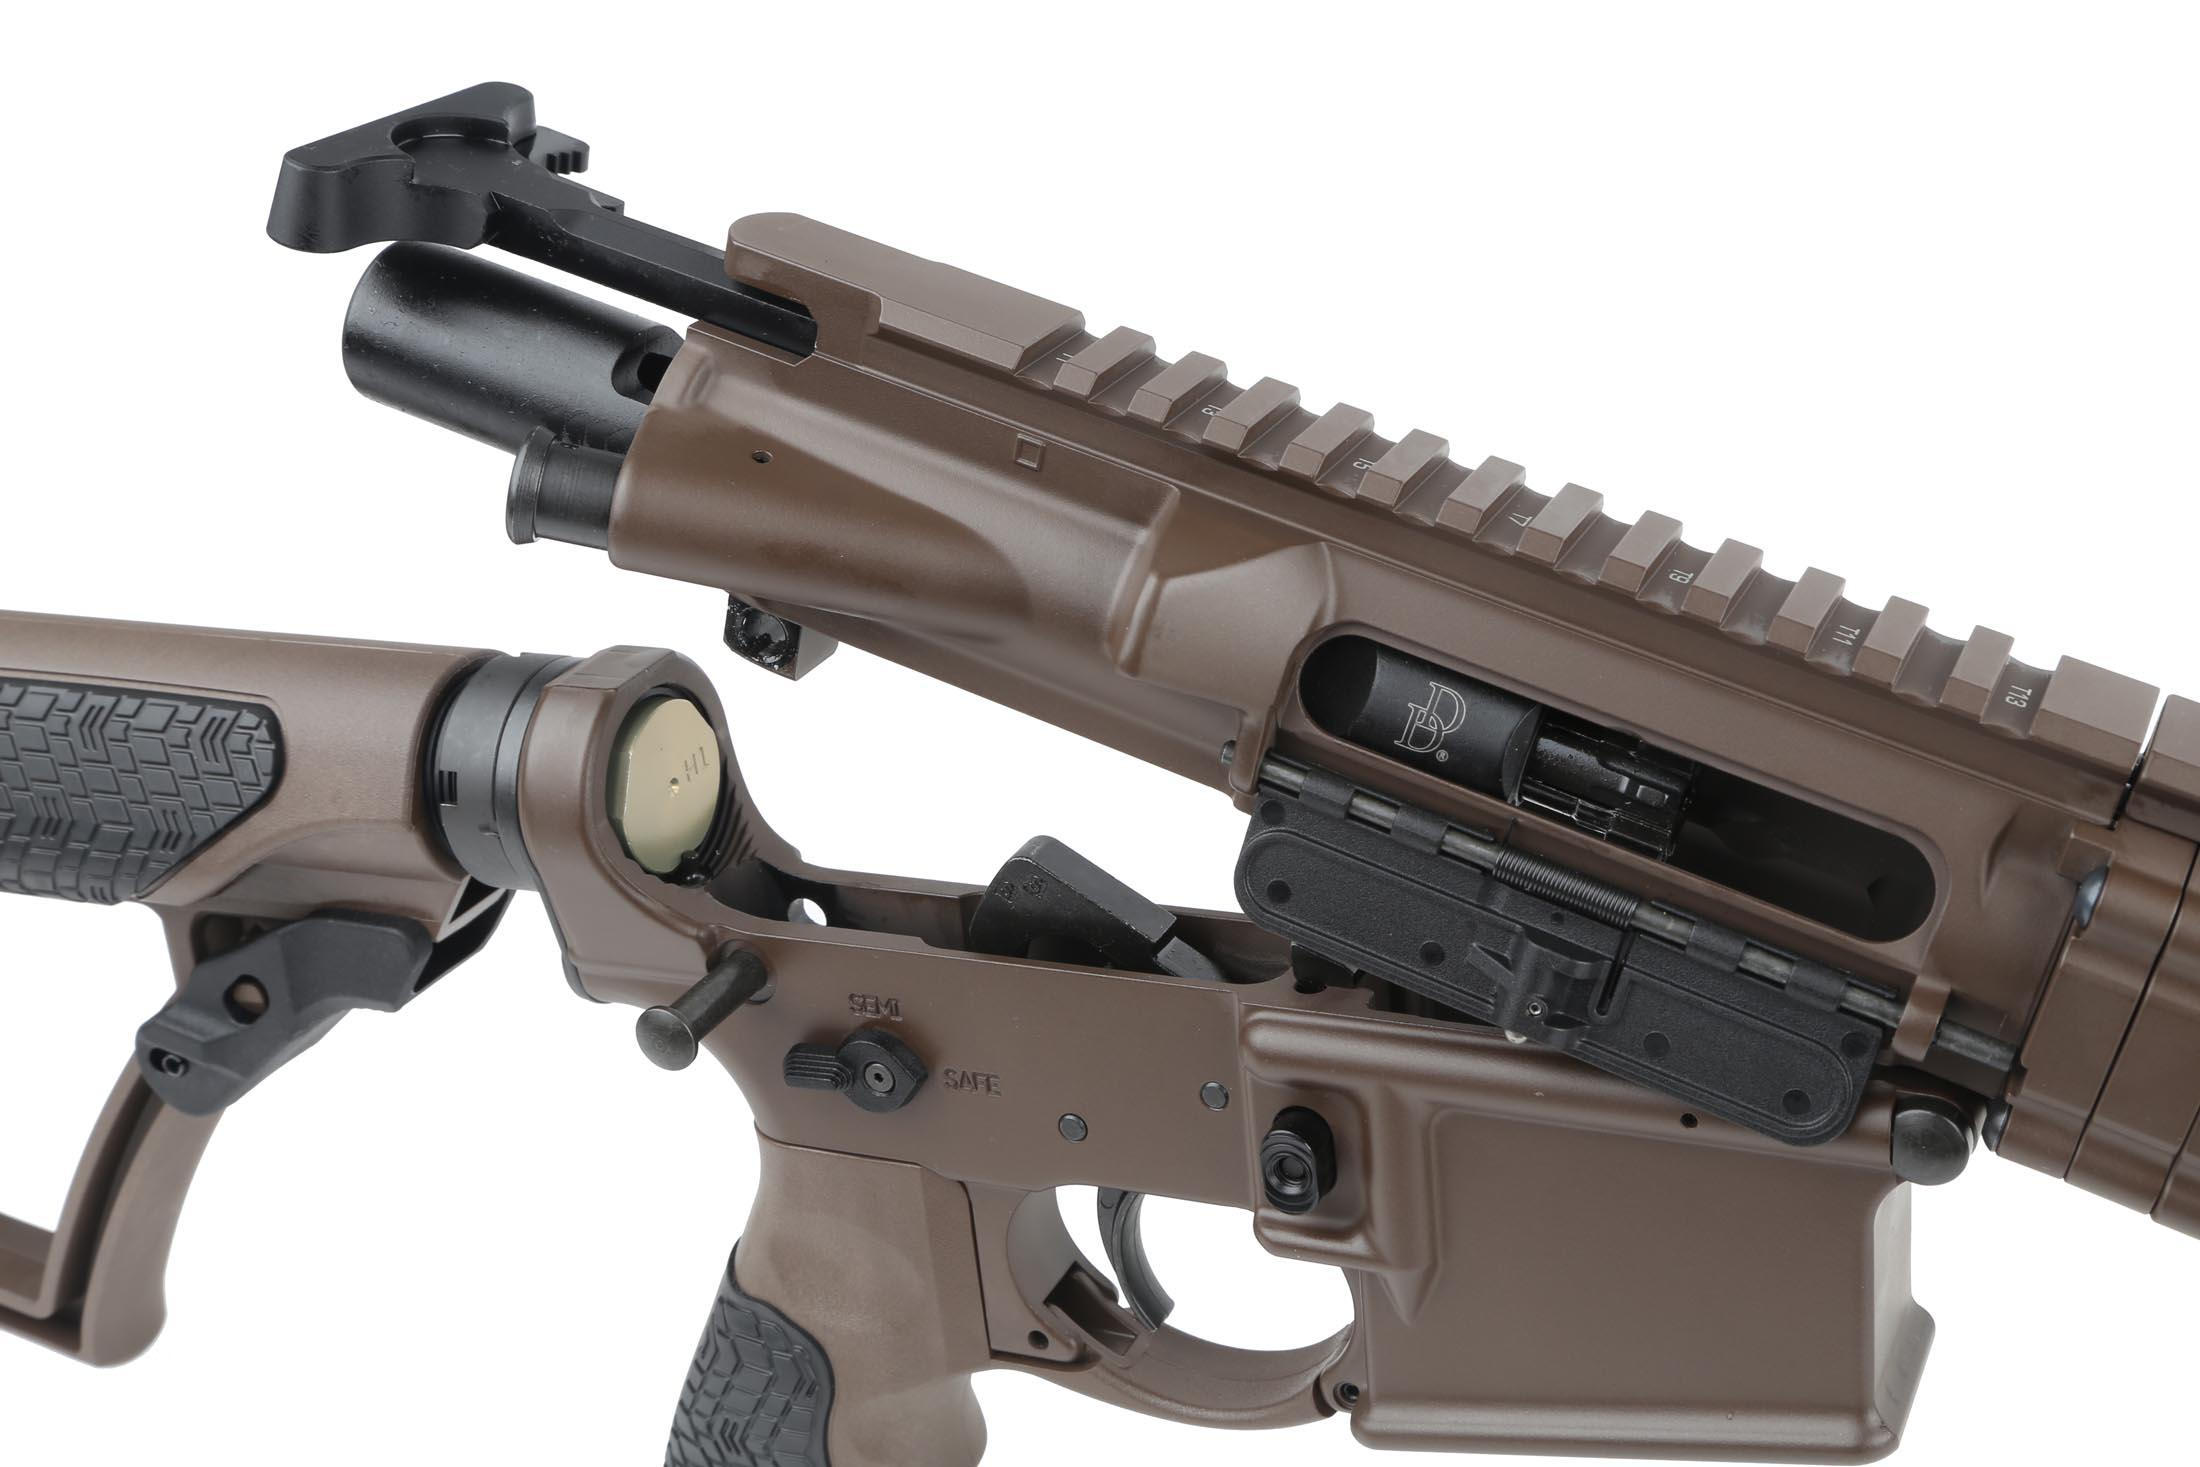 The DDM4v7 AR15 carbine comes with a mil-spec charging handle and M16 bolt carrier group